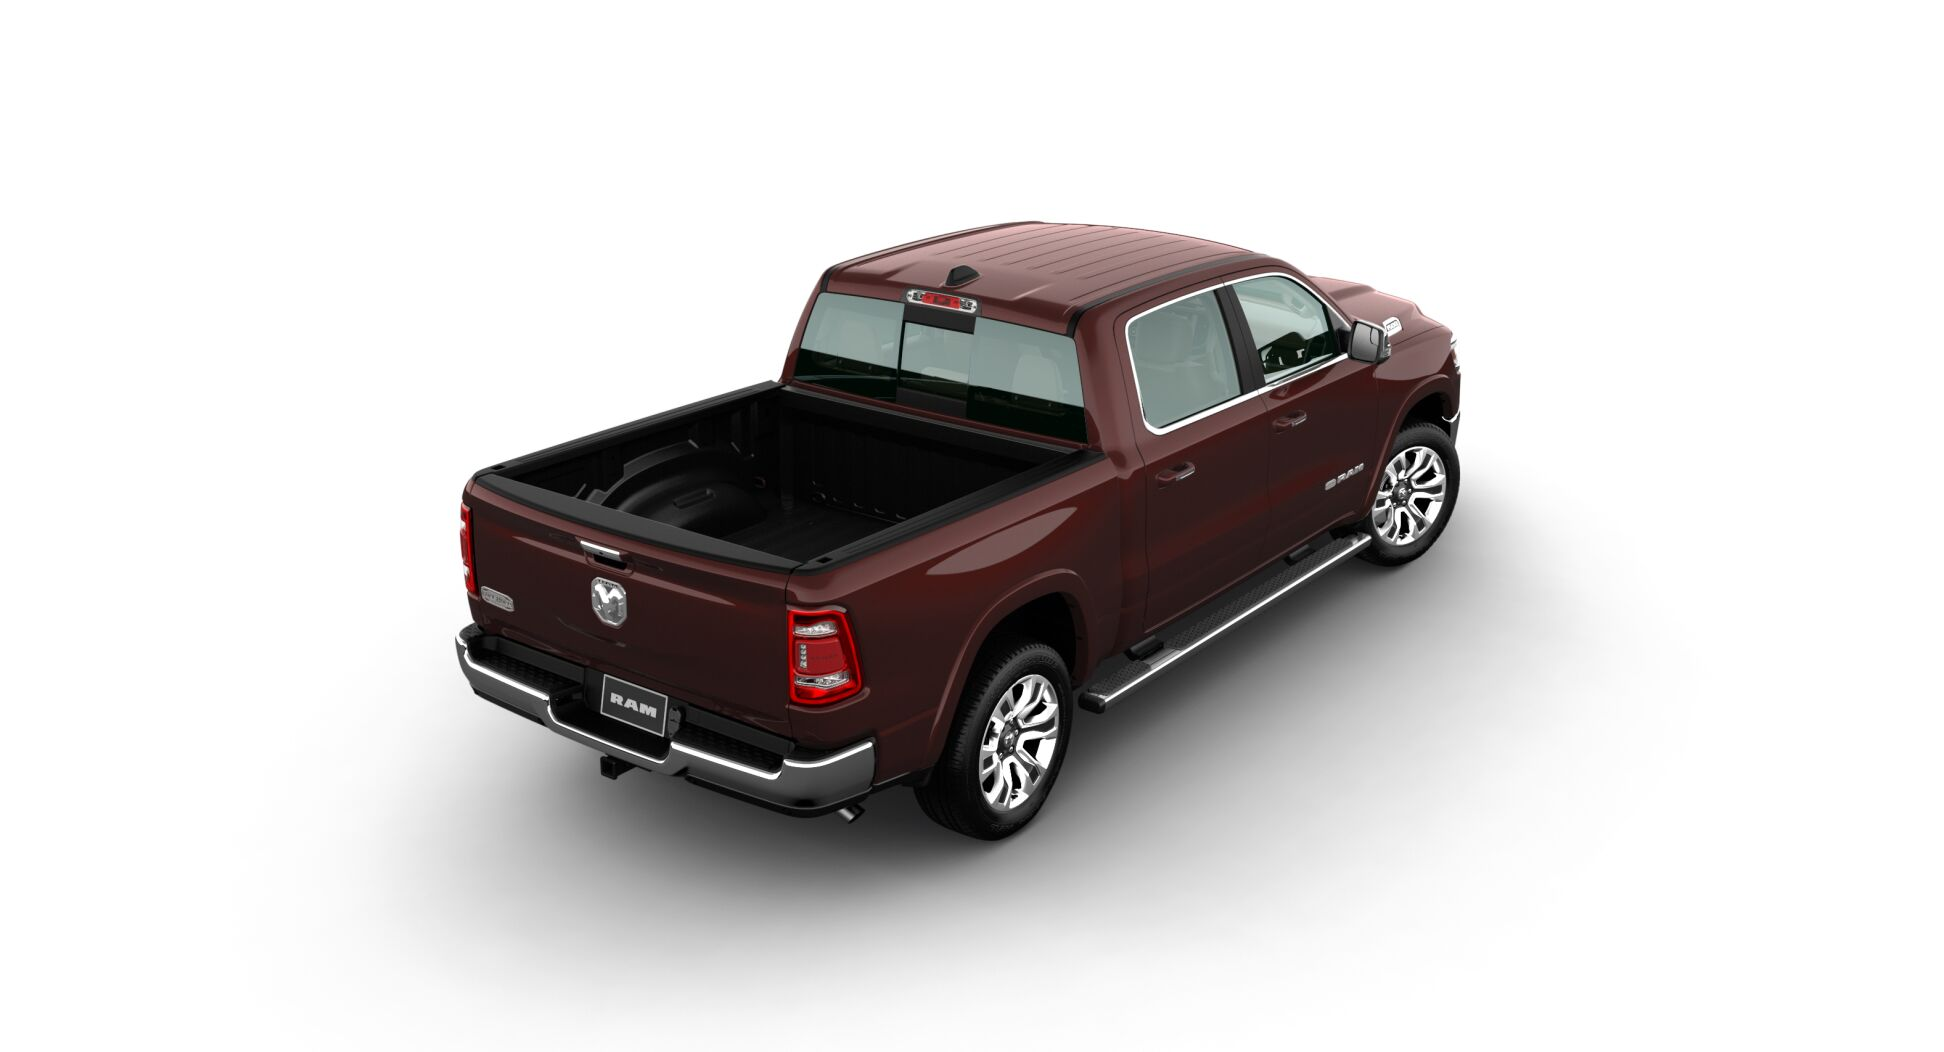 2020 Ram 1500 Longhorn Rear View Red Exterior Picture